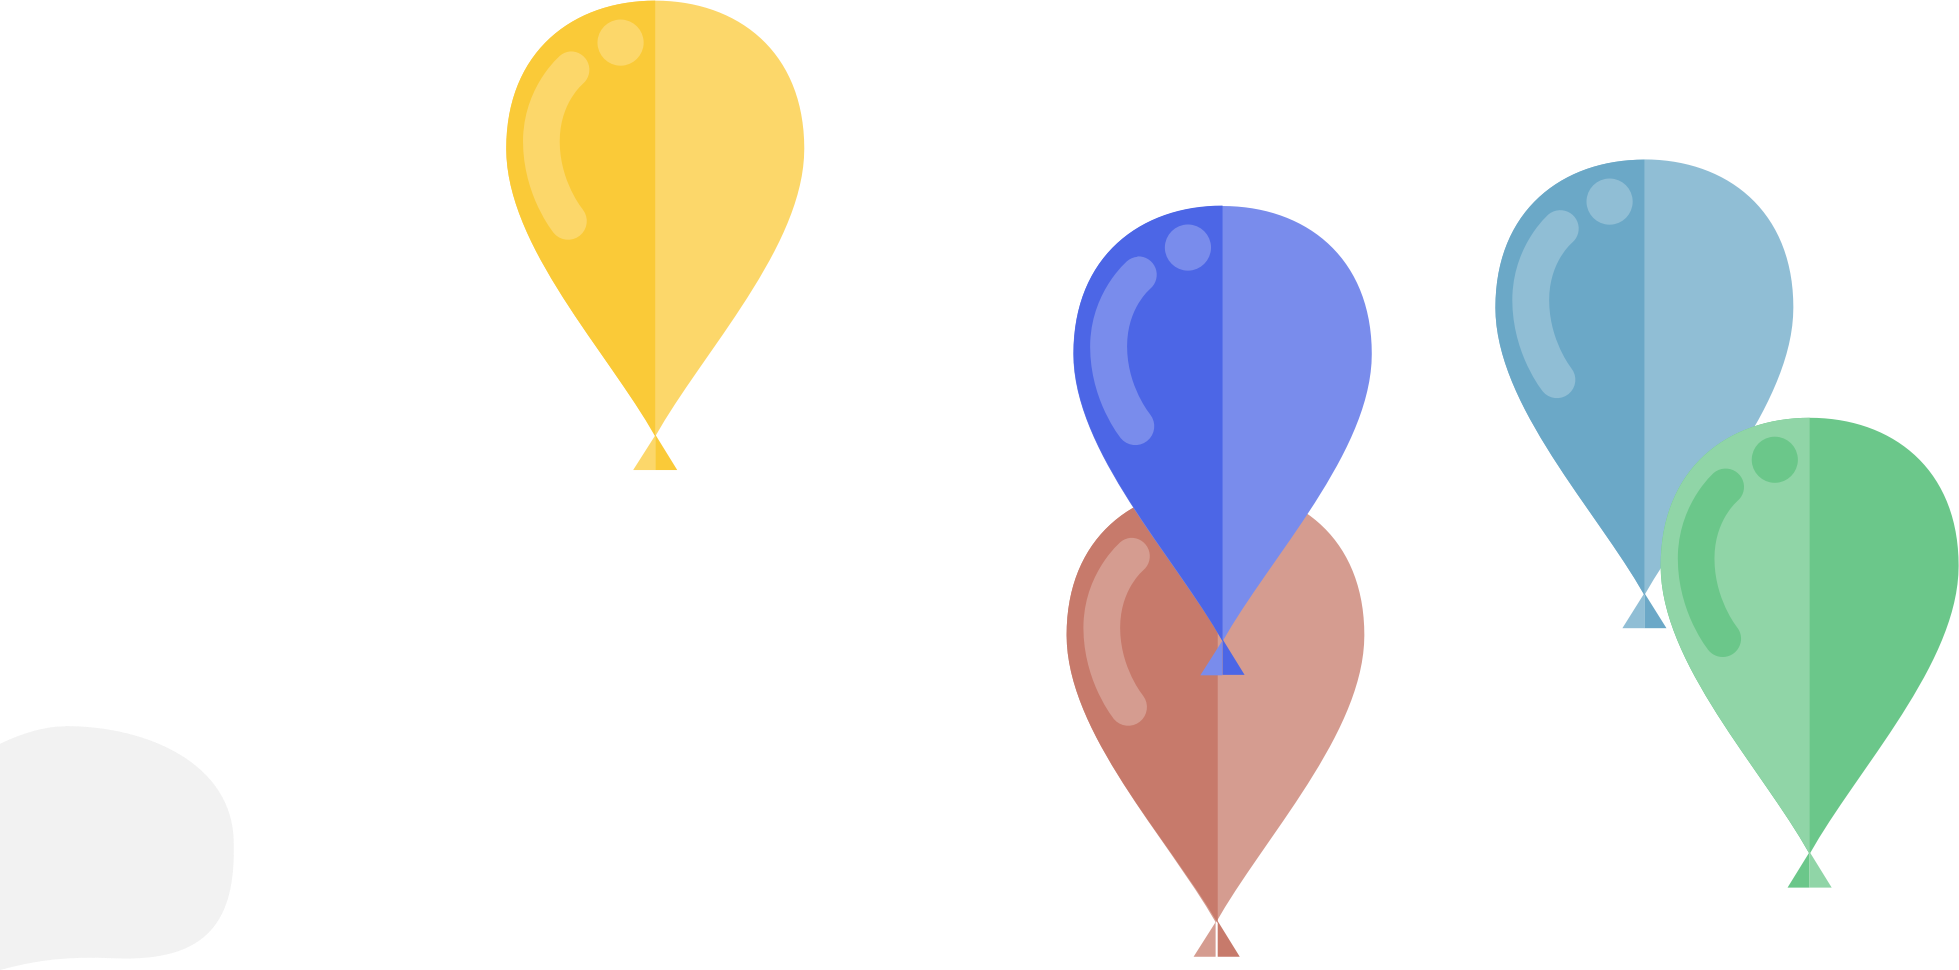 Balloons SMIL animation by Ulrike